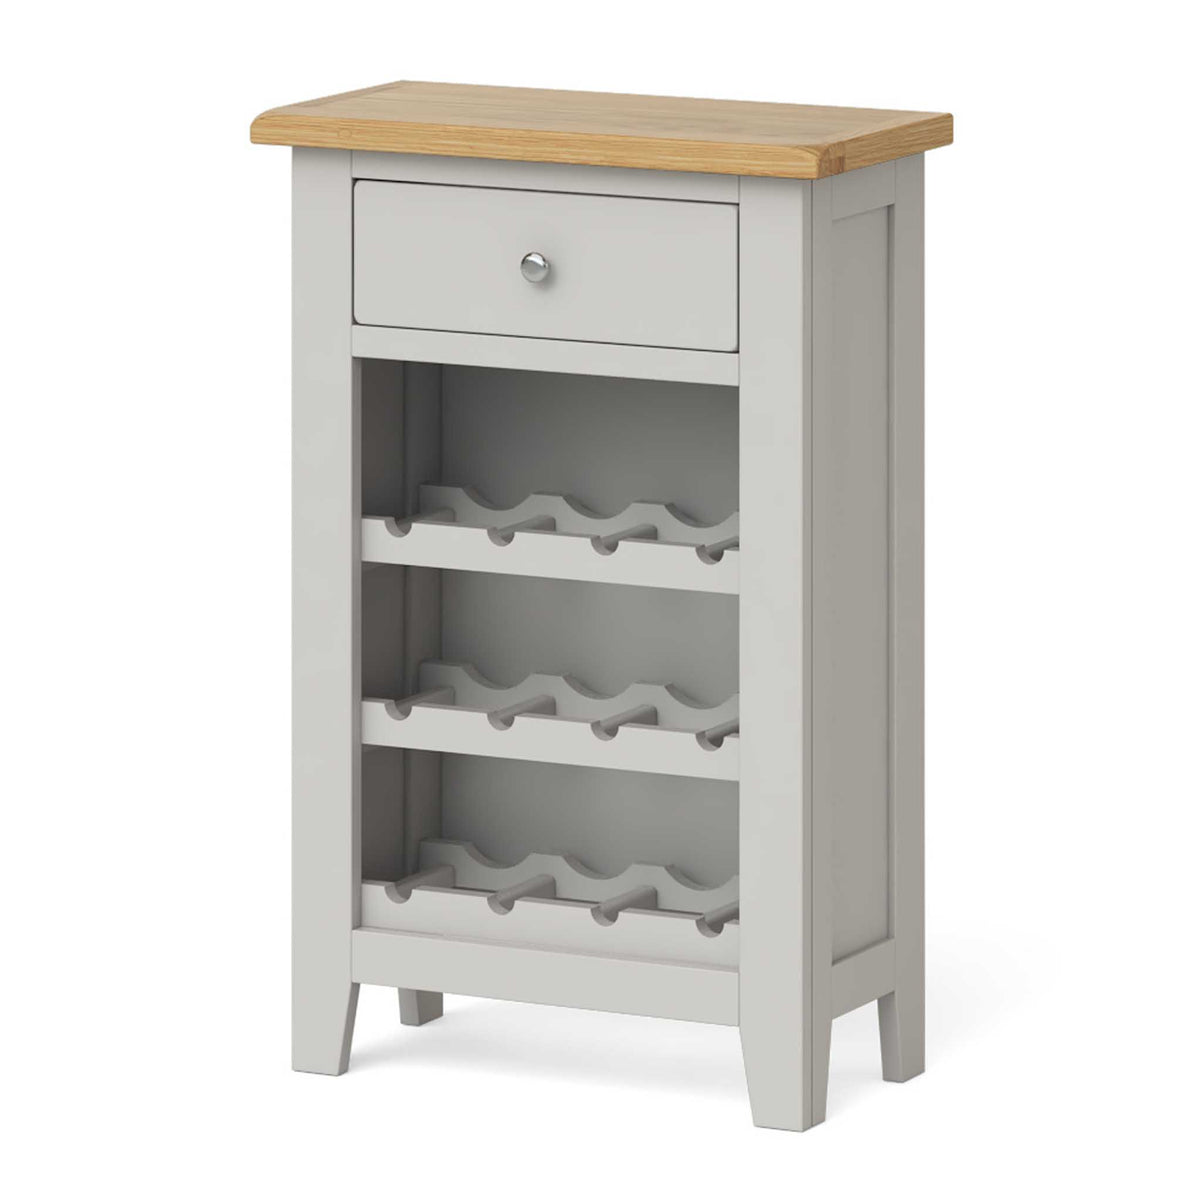 Lundy Grey Wine Rack Cabinet - Side view